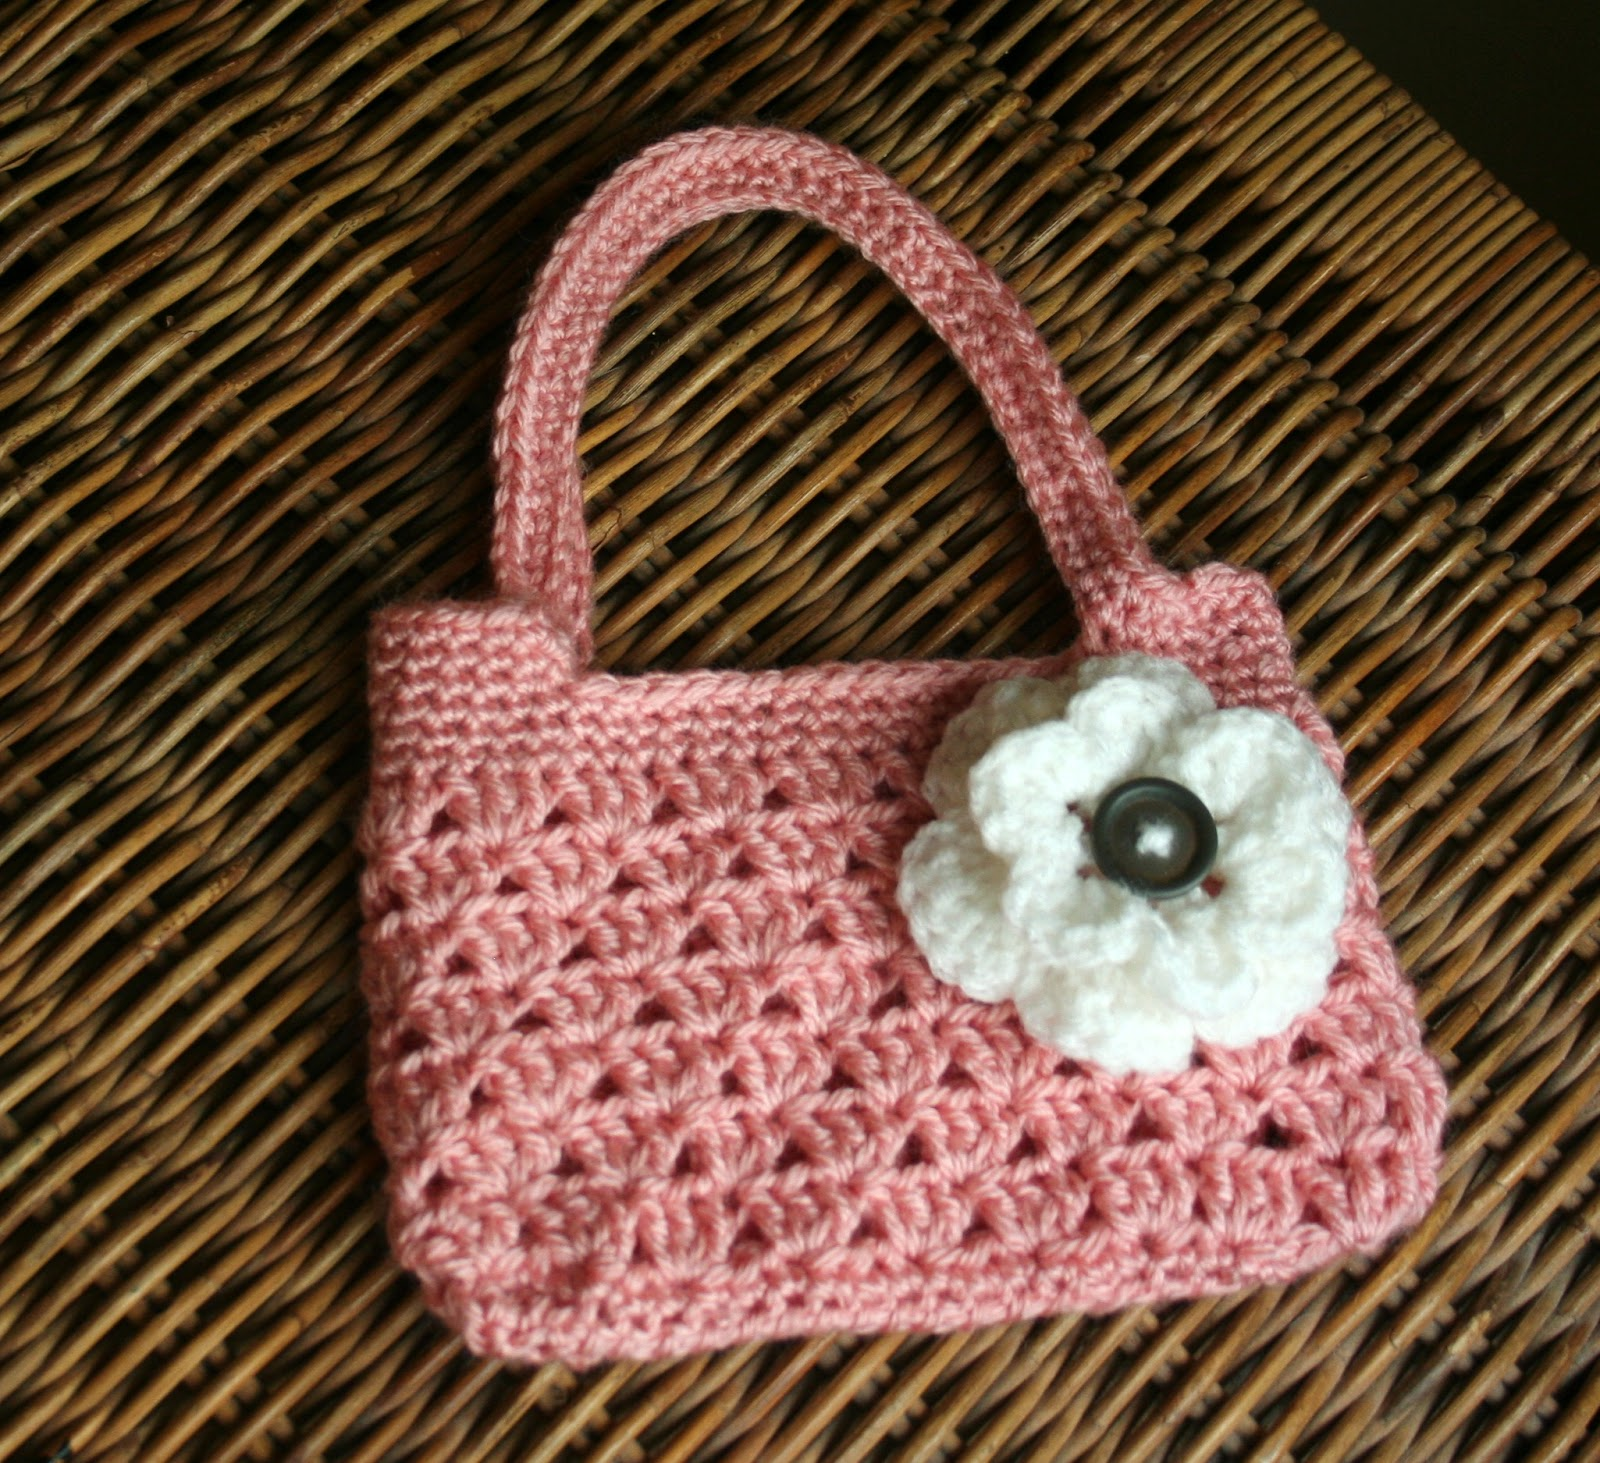 Crochet Patterns Purses : Tampa Bay Crochet: Free Easy Crochet Purse Pattern